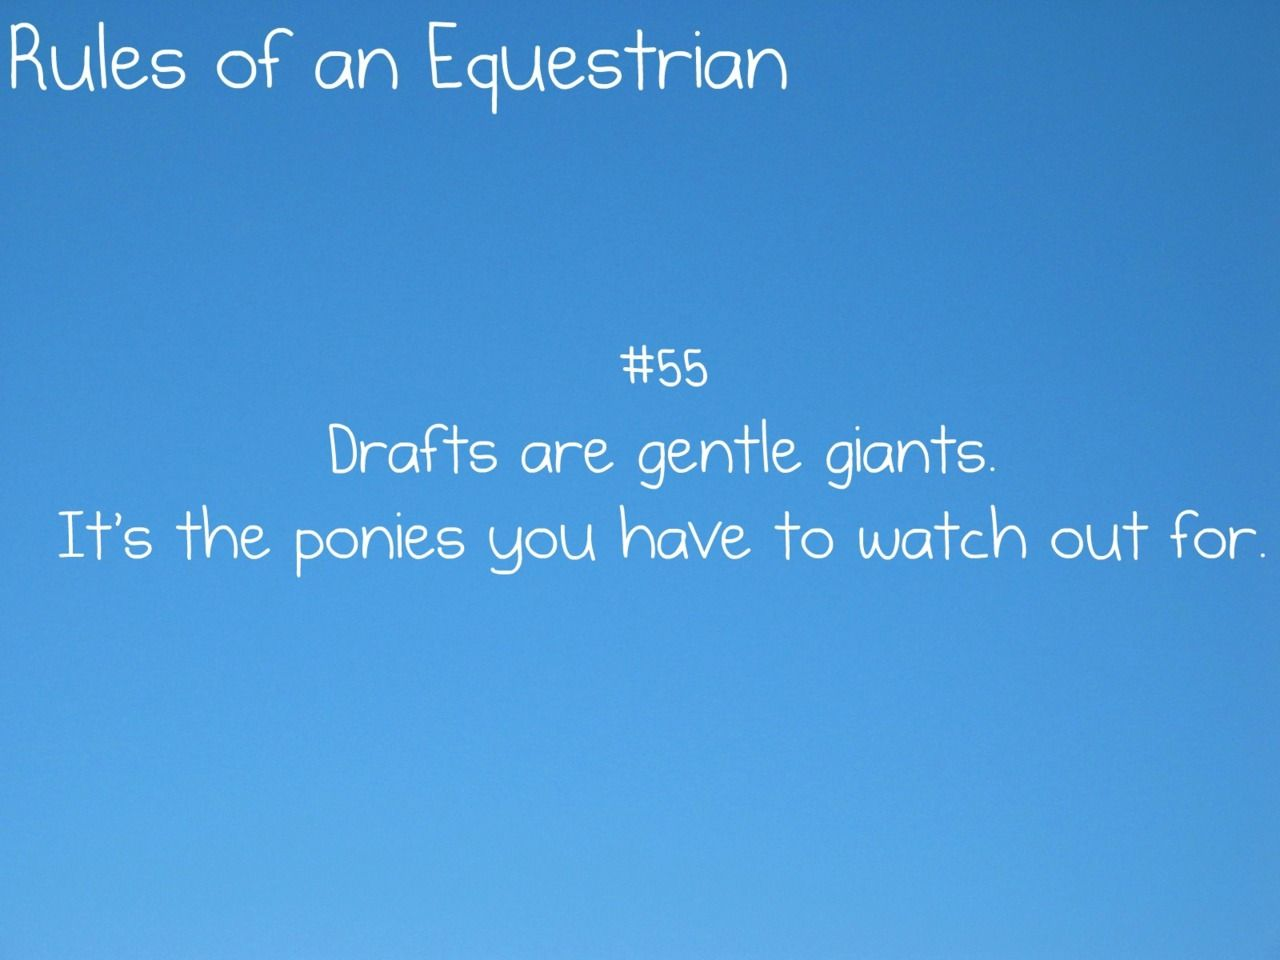 Funny Quotes About Family Issues: Rules Of An Equestrian: